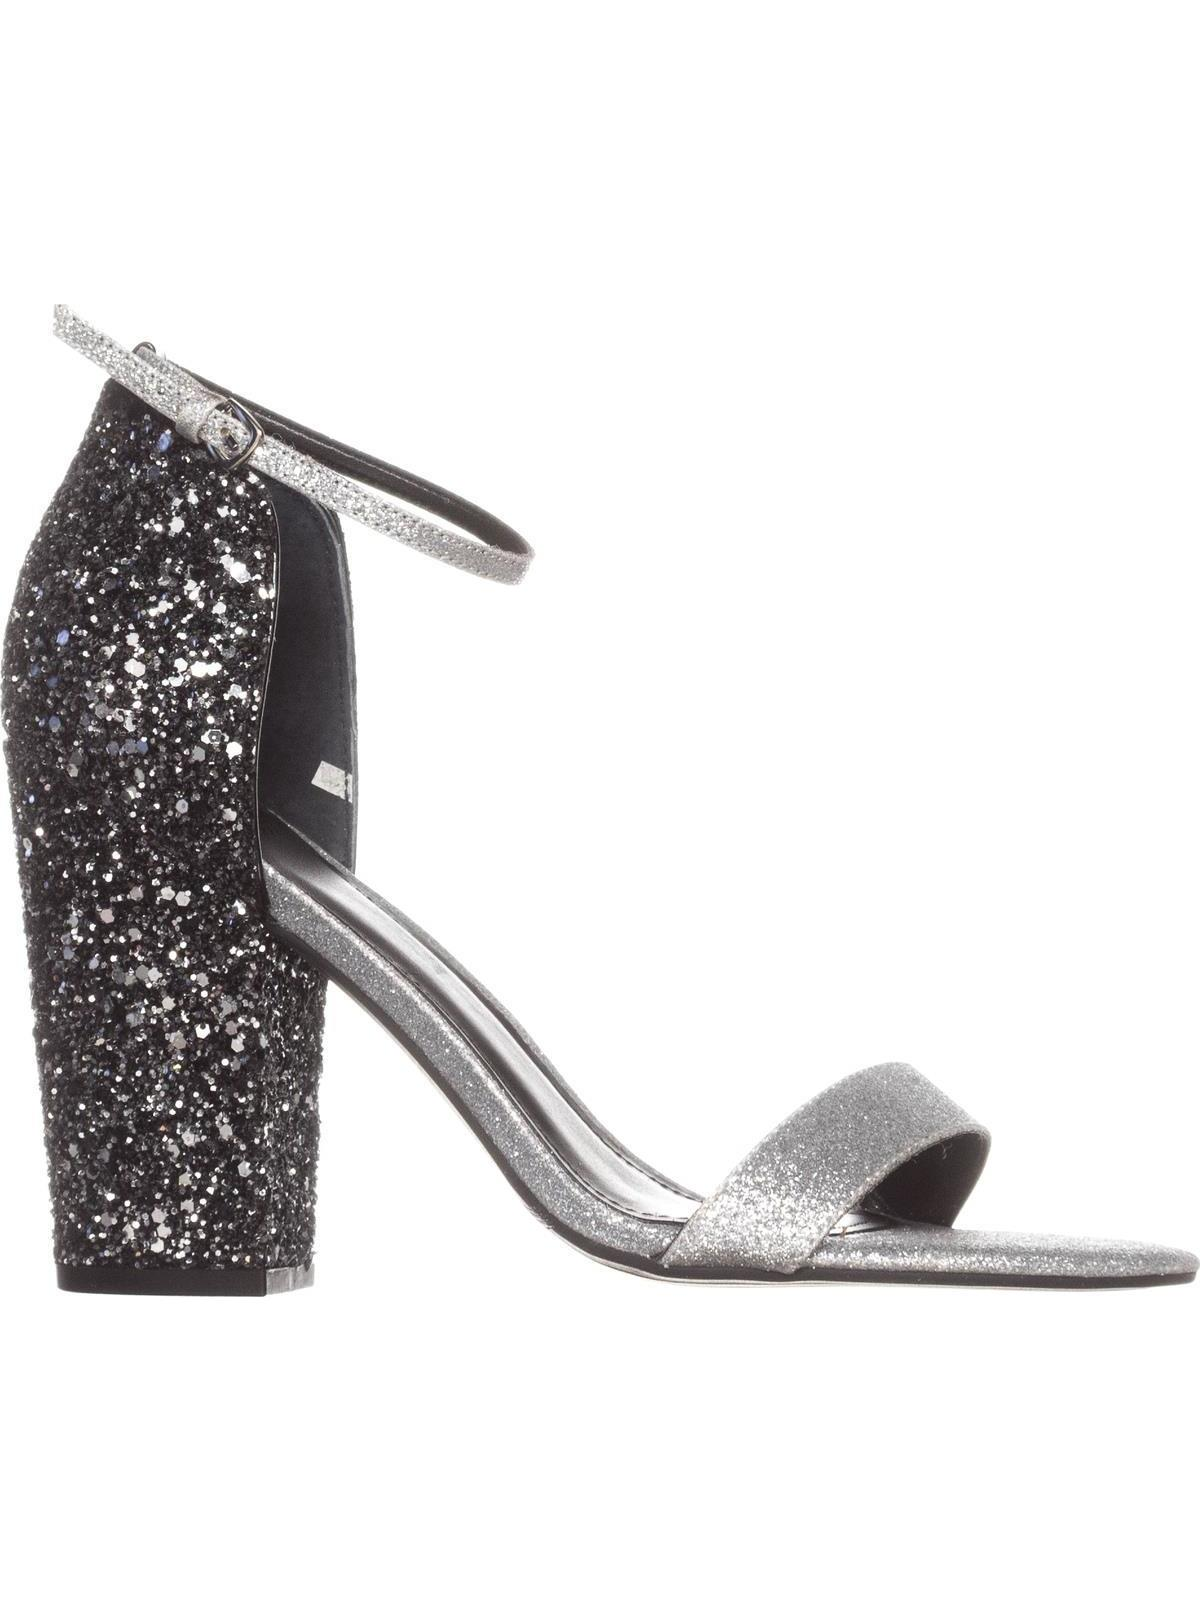 Guess Womens BamBam3 Open Toe Special Occasion Ankle dcc8068690a62